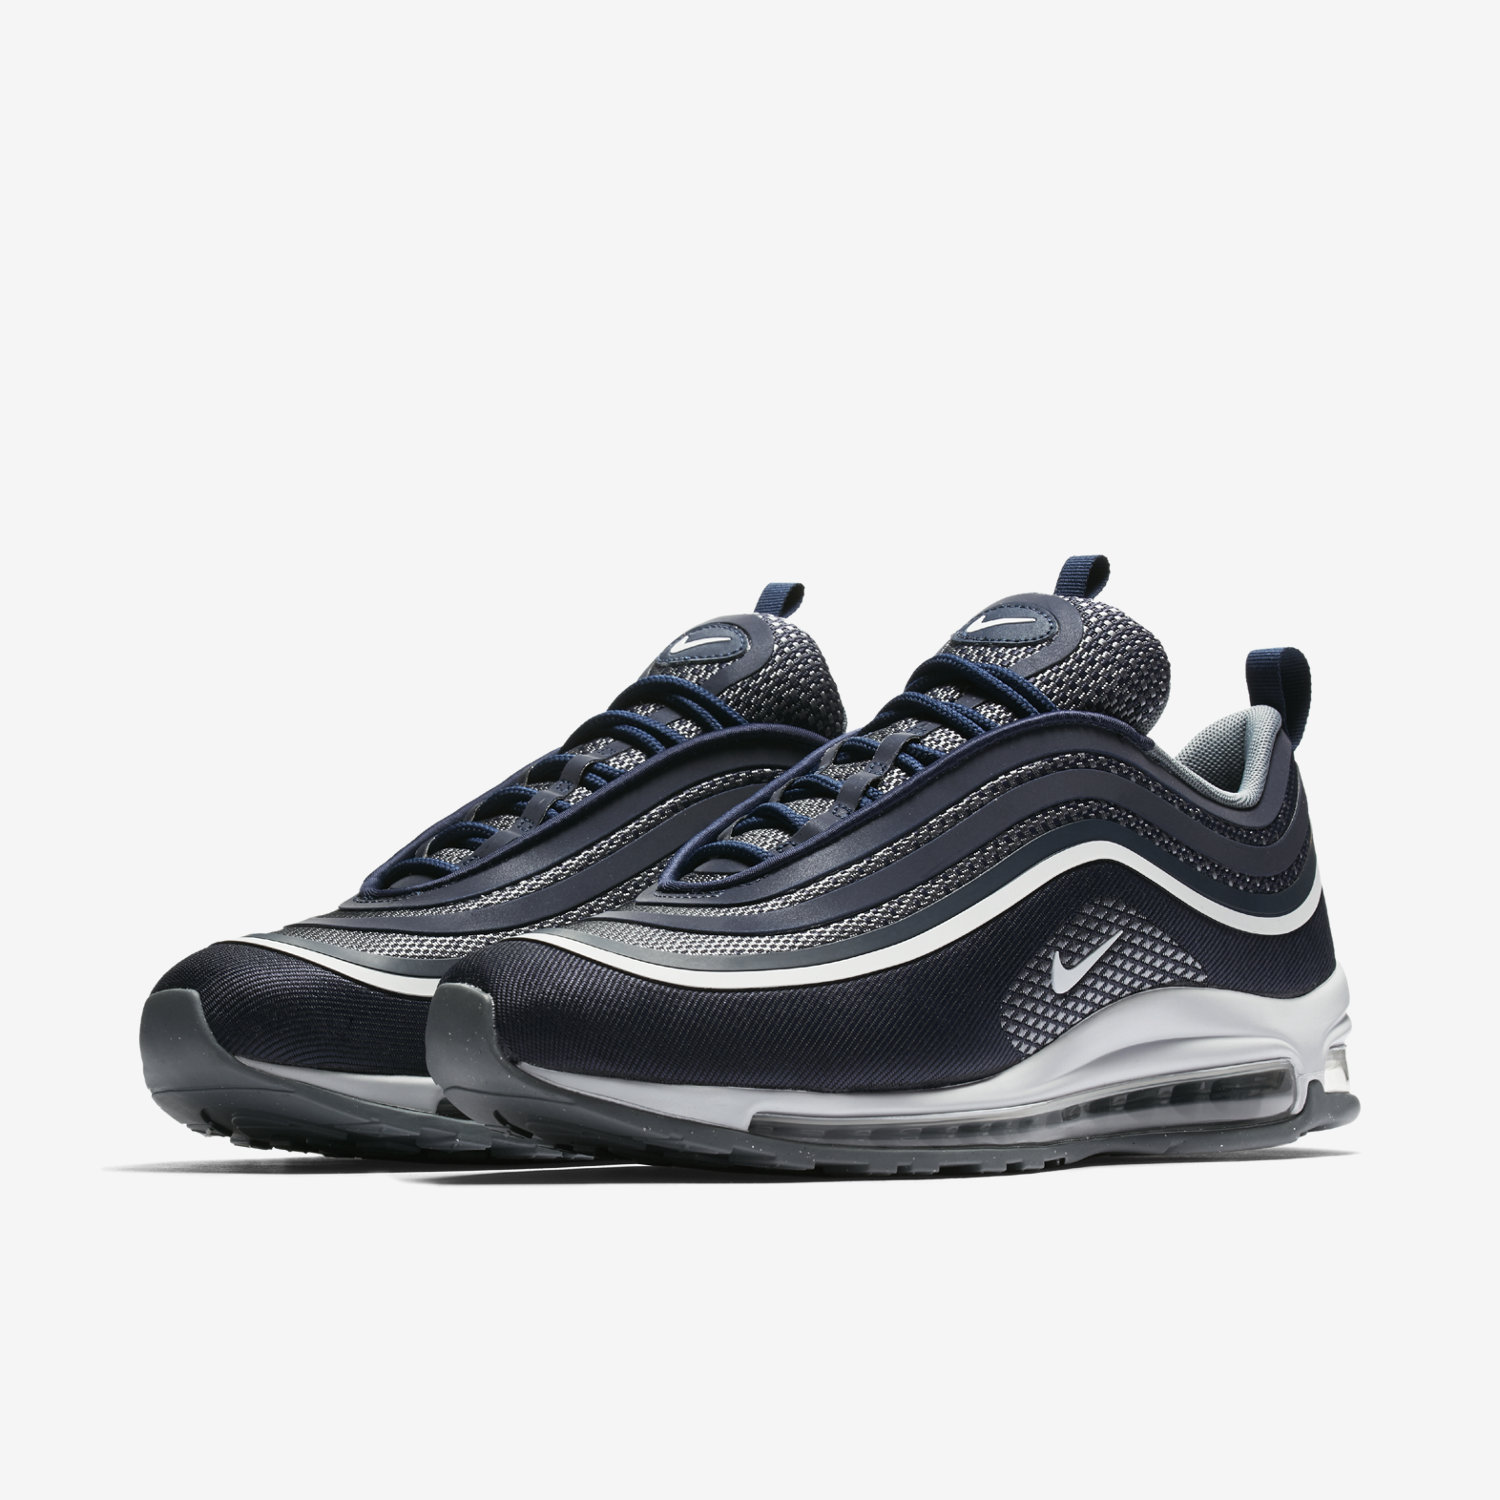 60%OFF Cheap Nike Air Max 97 Silver Bullet OG Just Restocked